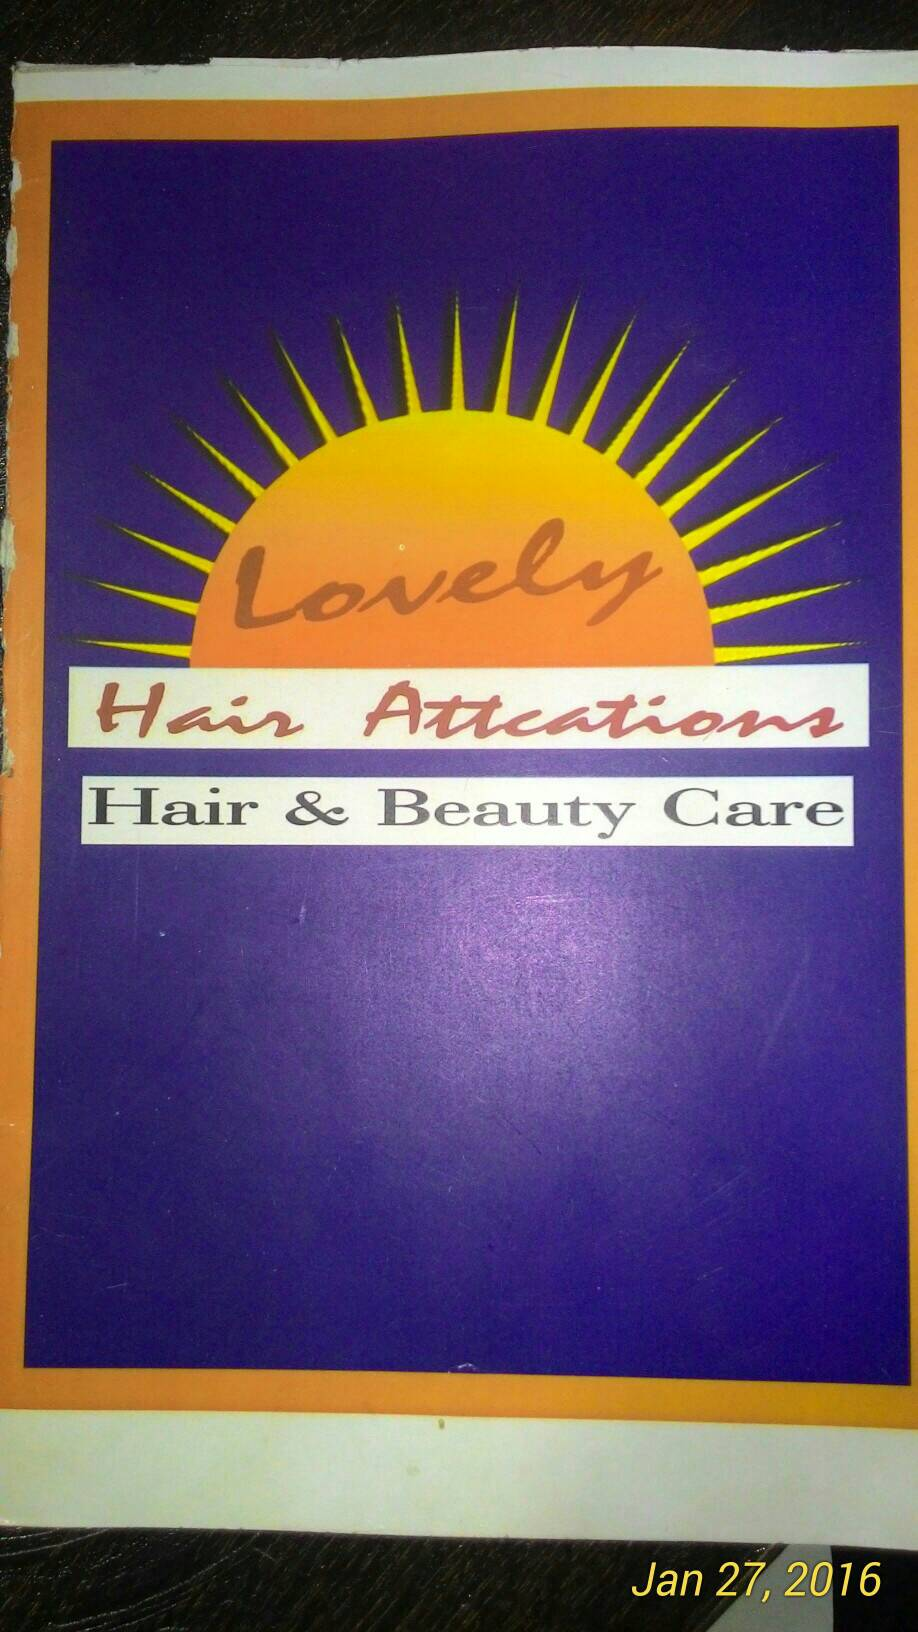 Lovely Hair Attraction(Hair & Beauty Care)